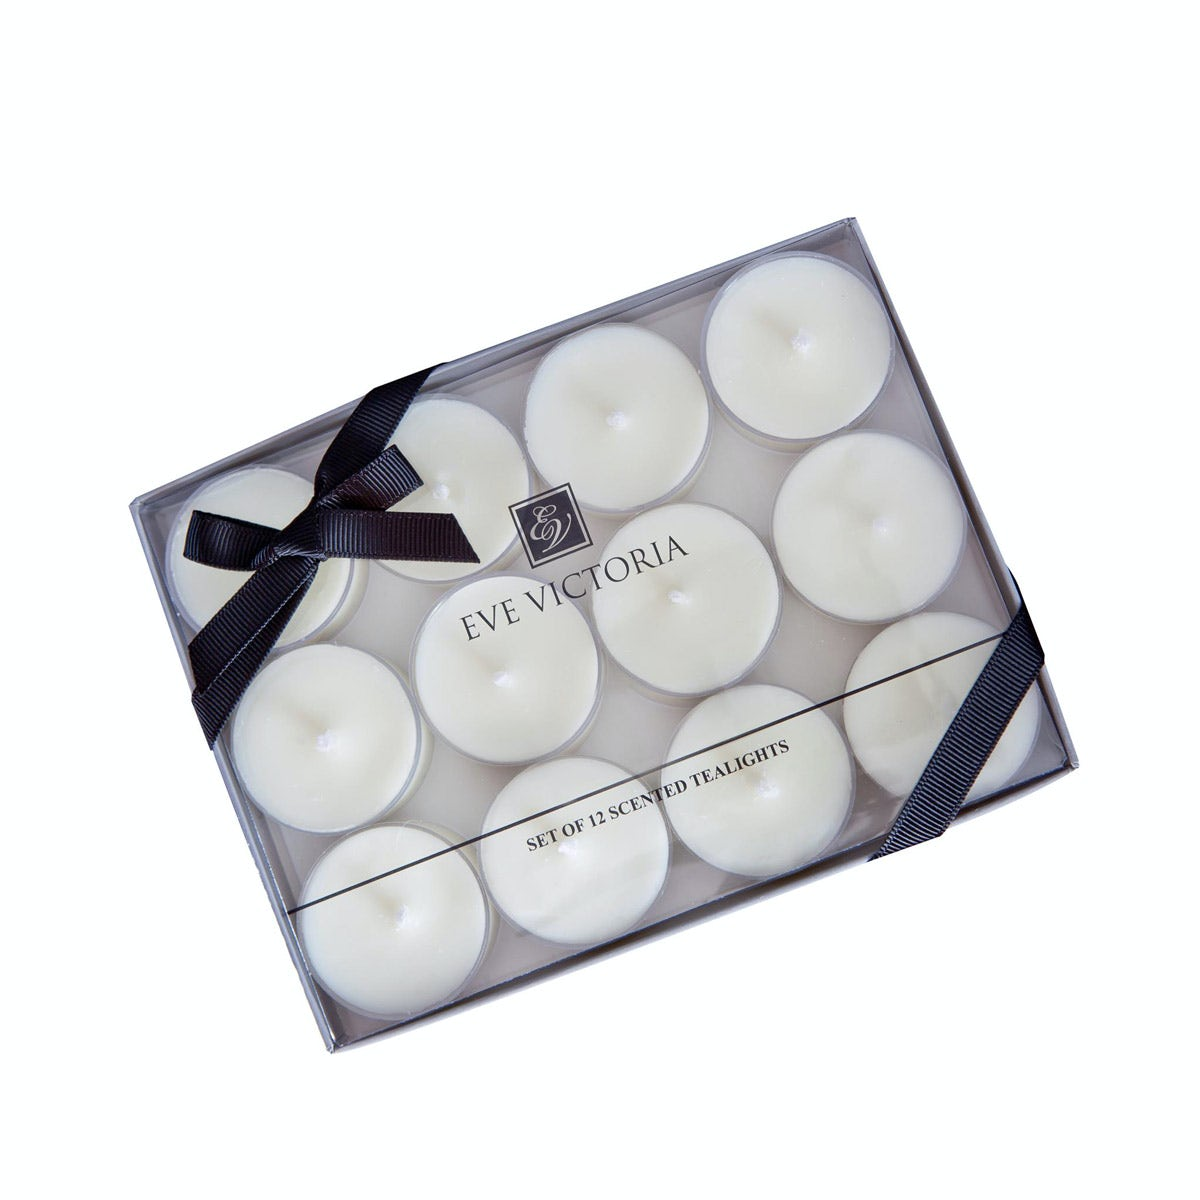 Eve Victoria Neroli, rose & sandalwood box of 12 tea lights